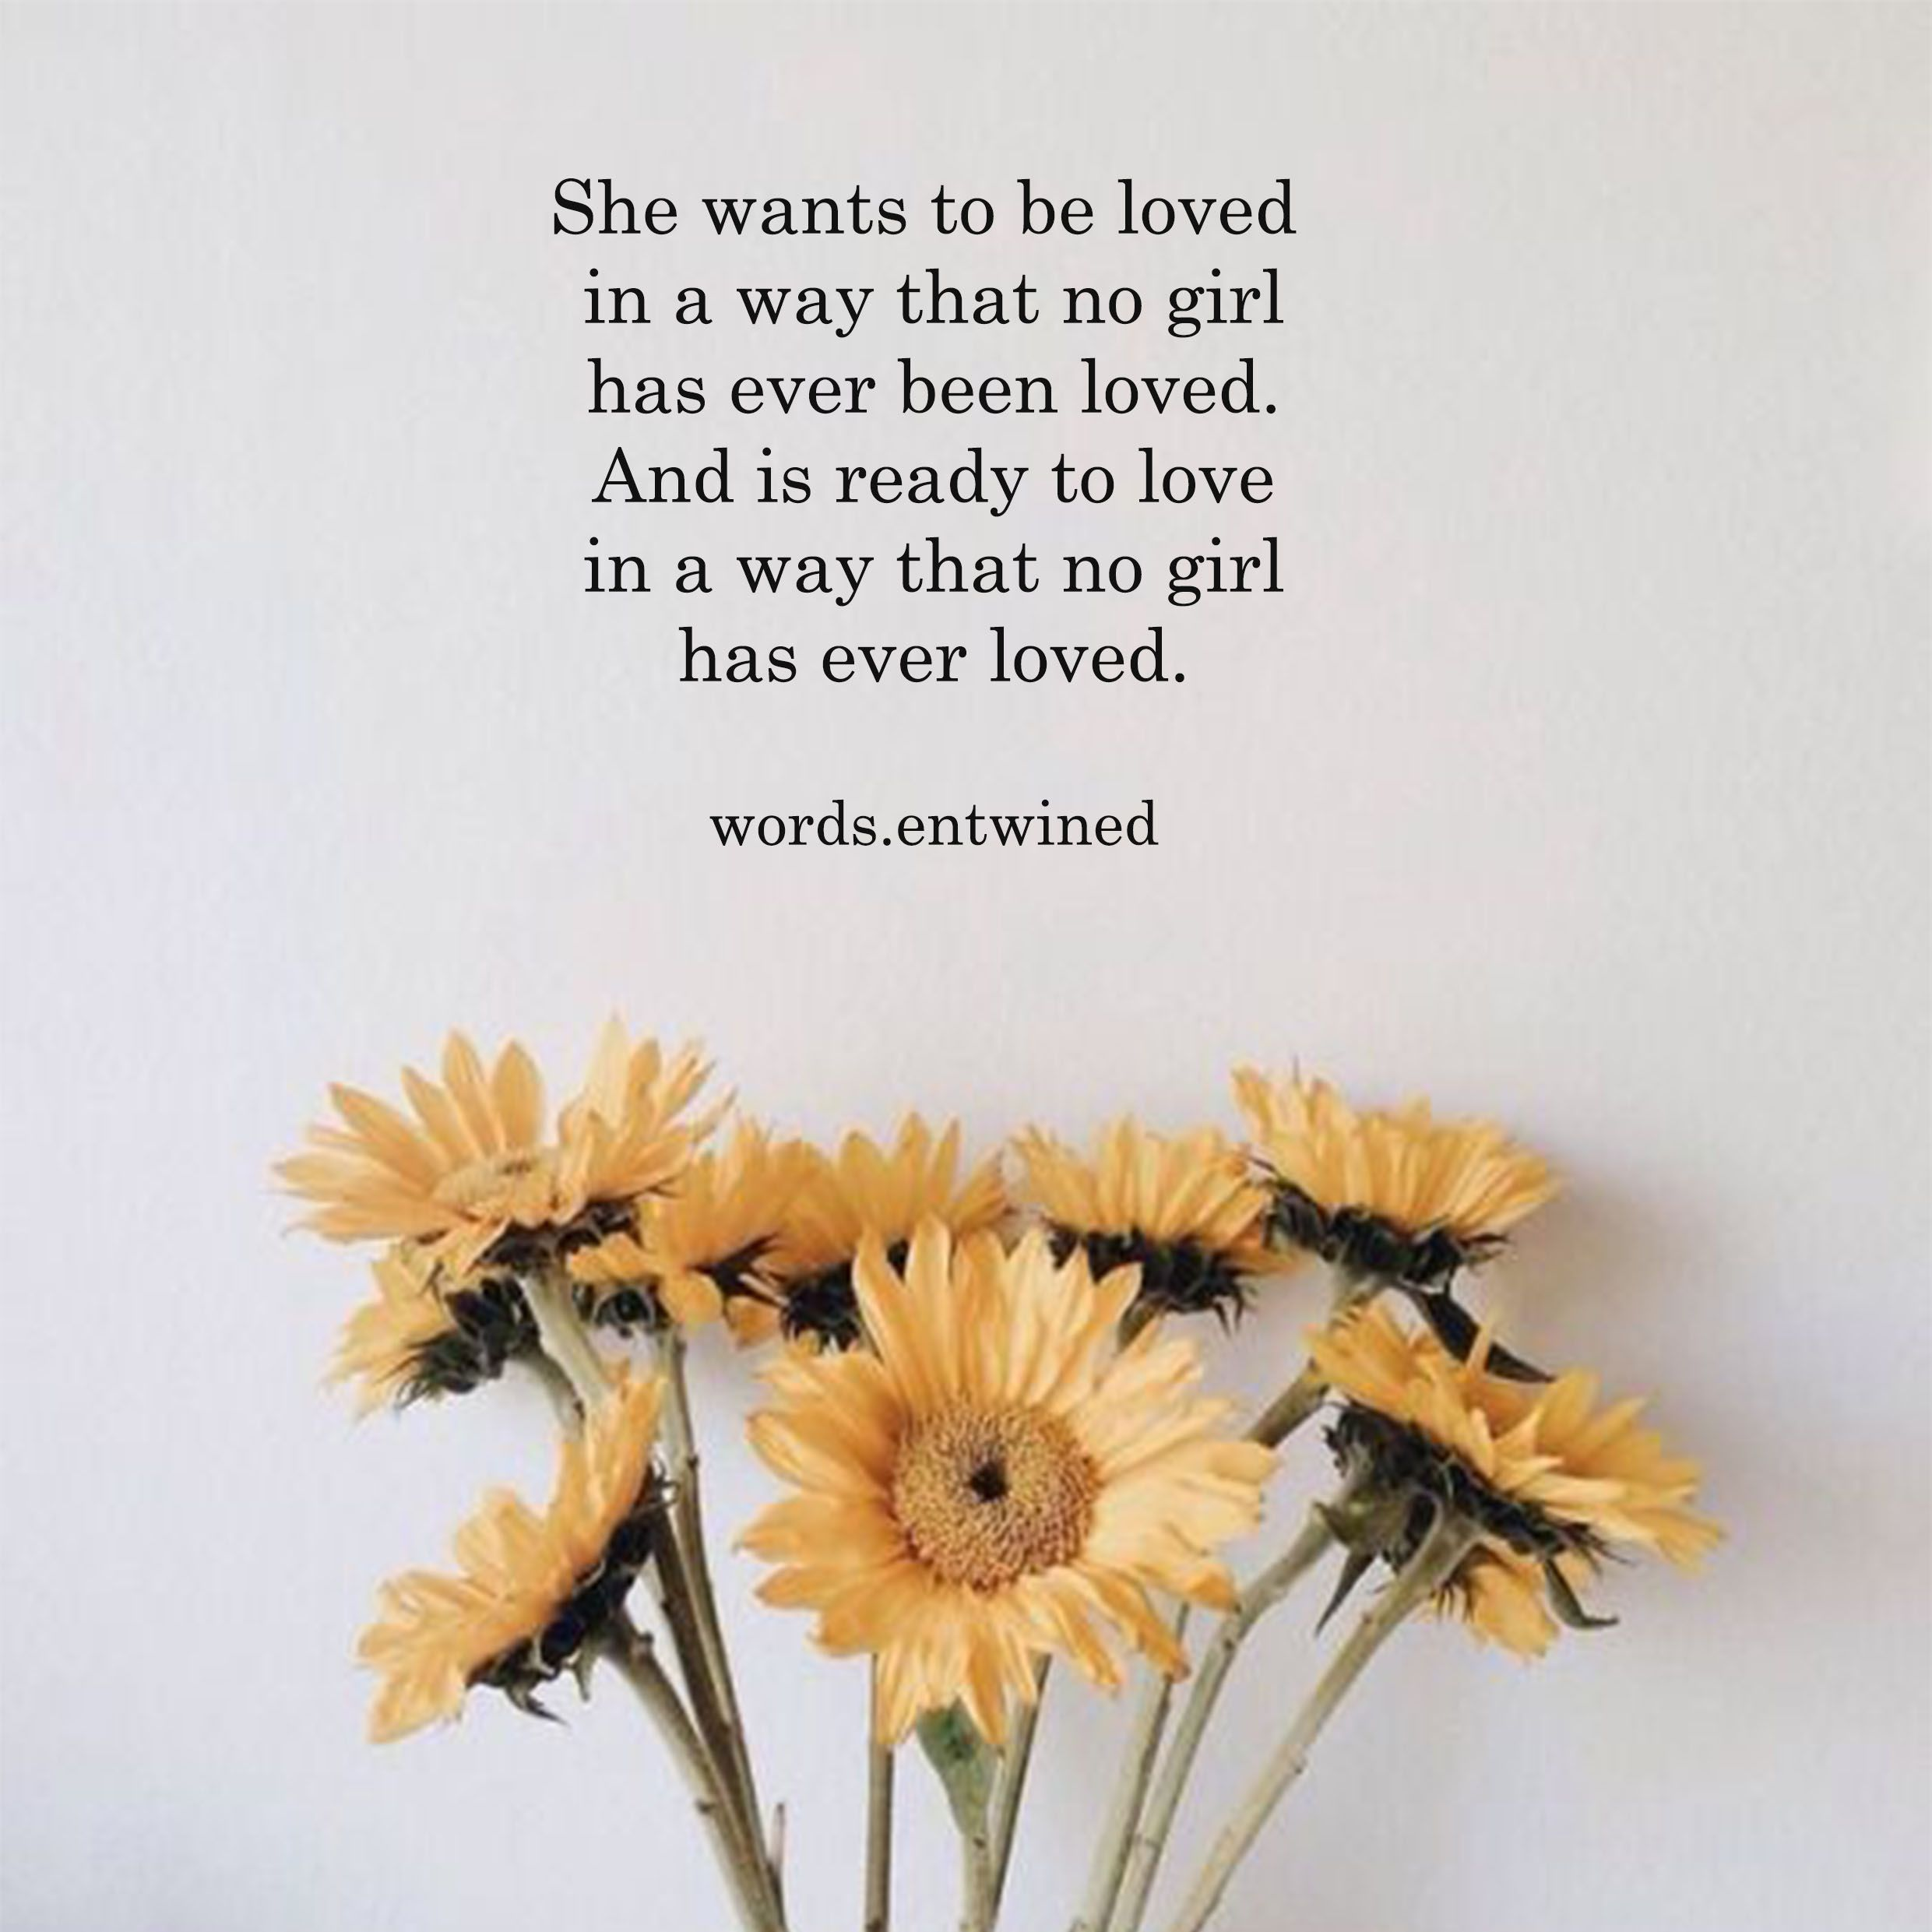 Yellow Flowers Magic Woven Into Words Pinterest Poem Quotes